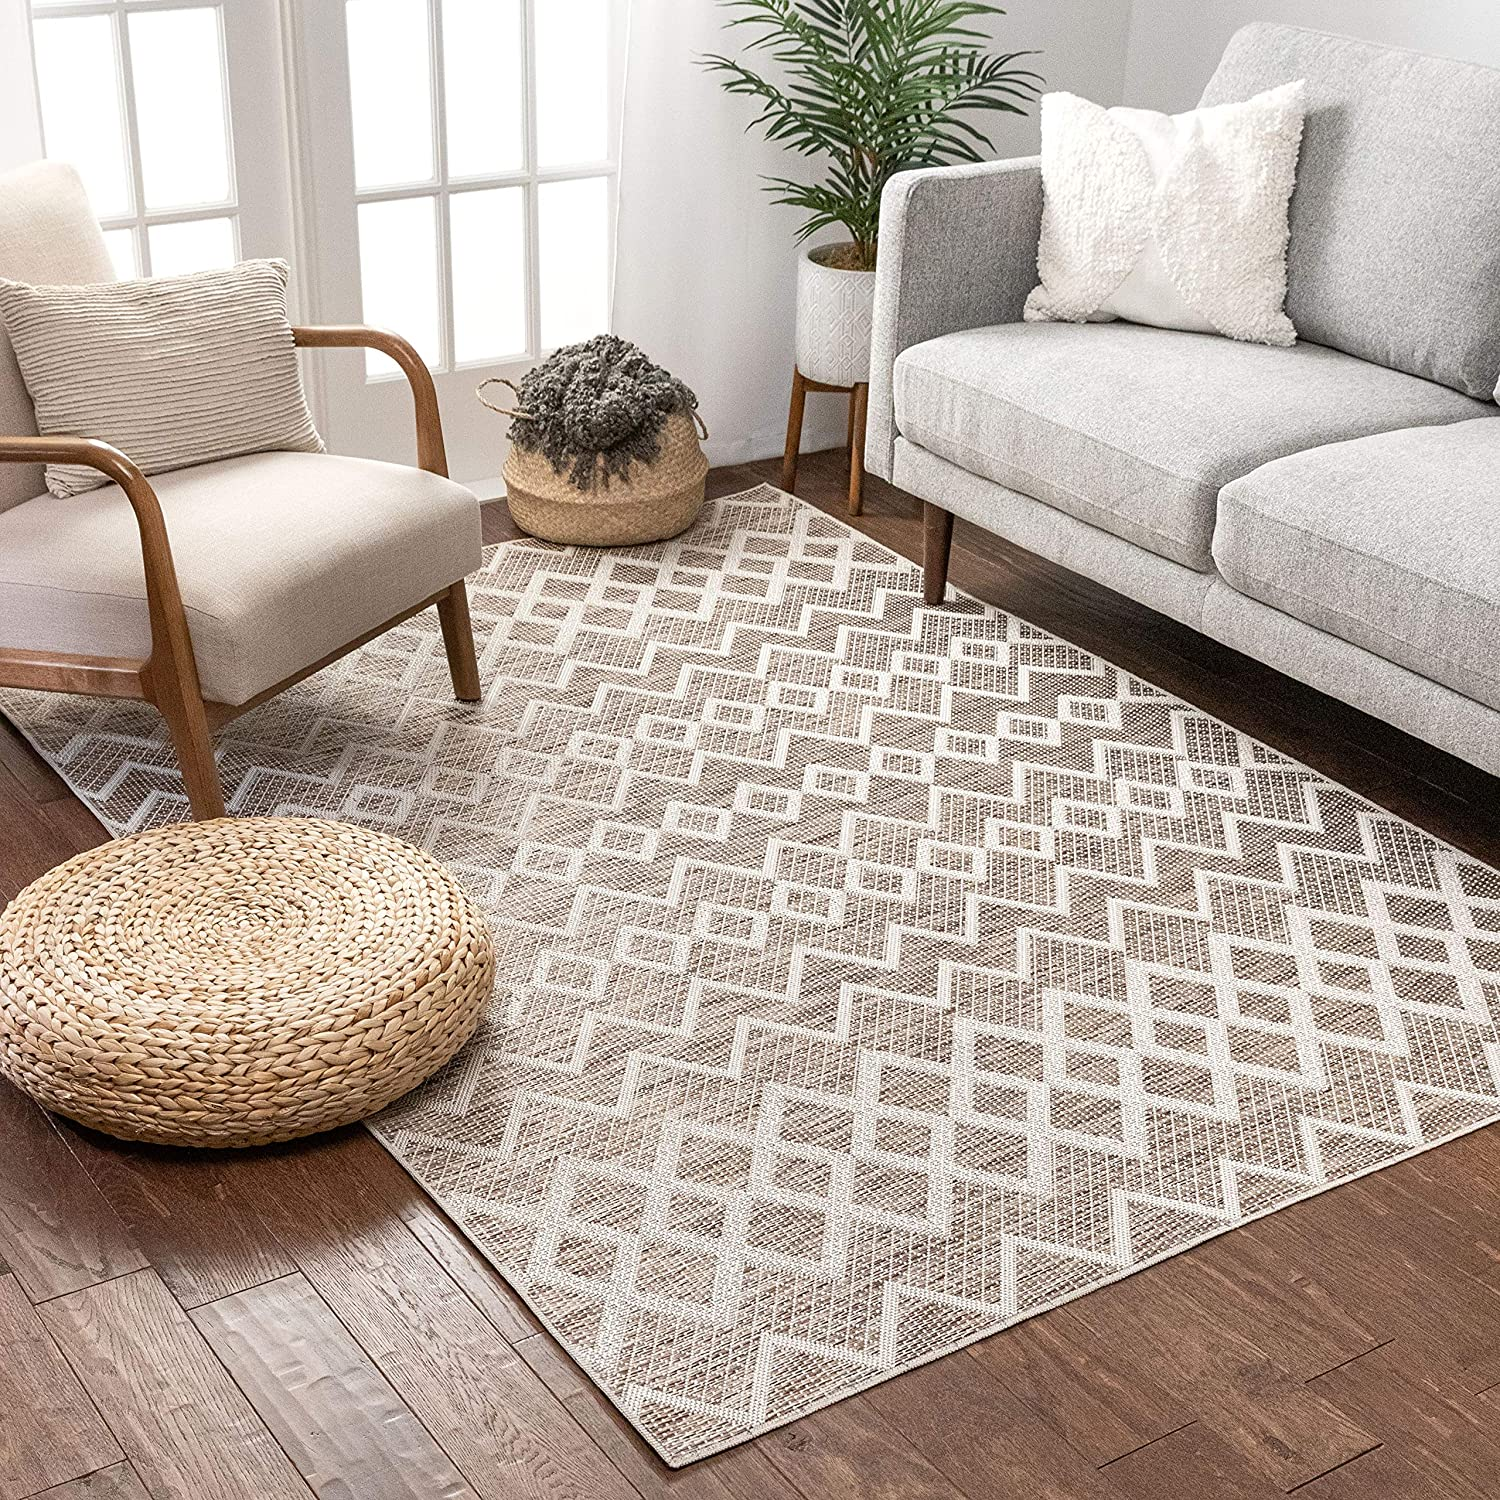 Amazon Com Well Woven Alina Beige Moroccan Flatweave Tribal Geometric Pattern Area Rug 5x7 5 3 X 7 3 Home Kitchen